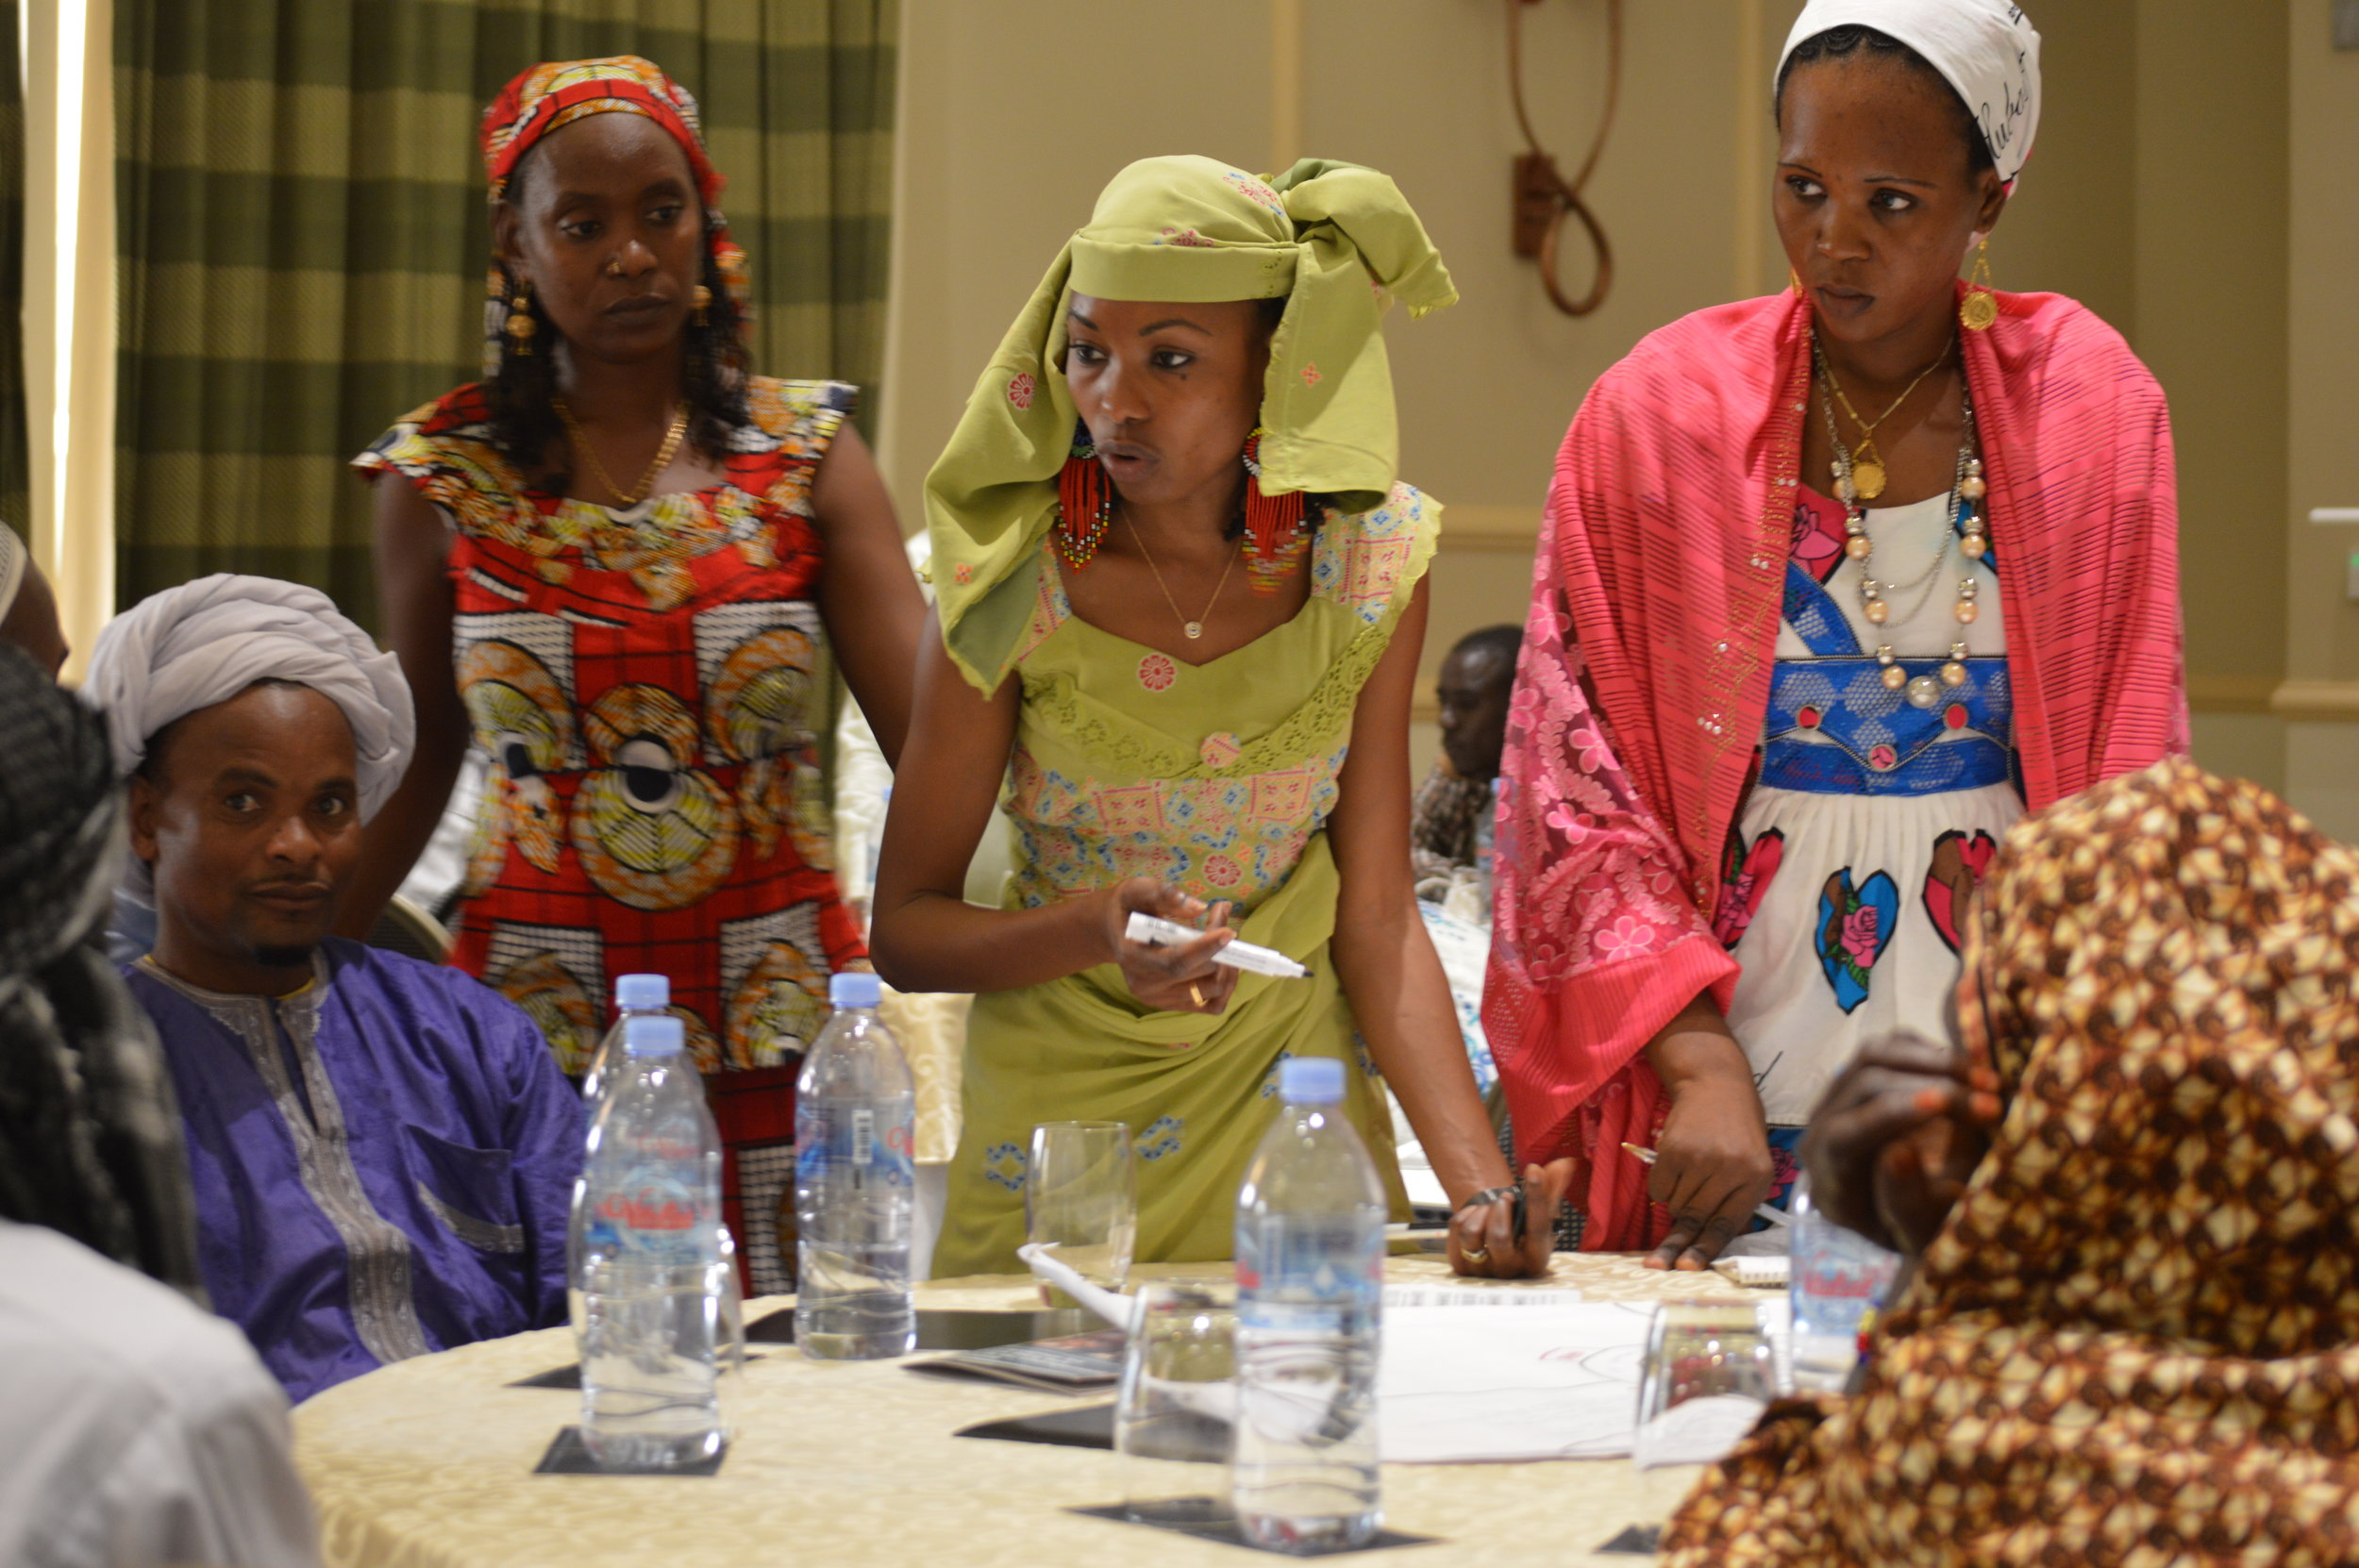 Hindou Ibrahim leading a workshop in Ndjaména, Chad discussing climate adaptation and traditional ecological knowledge.